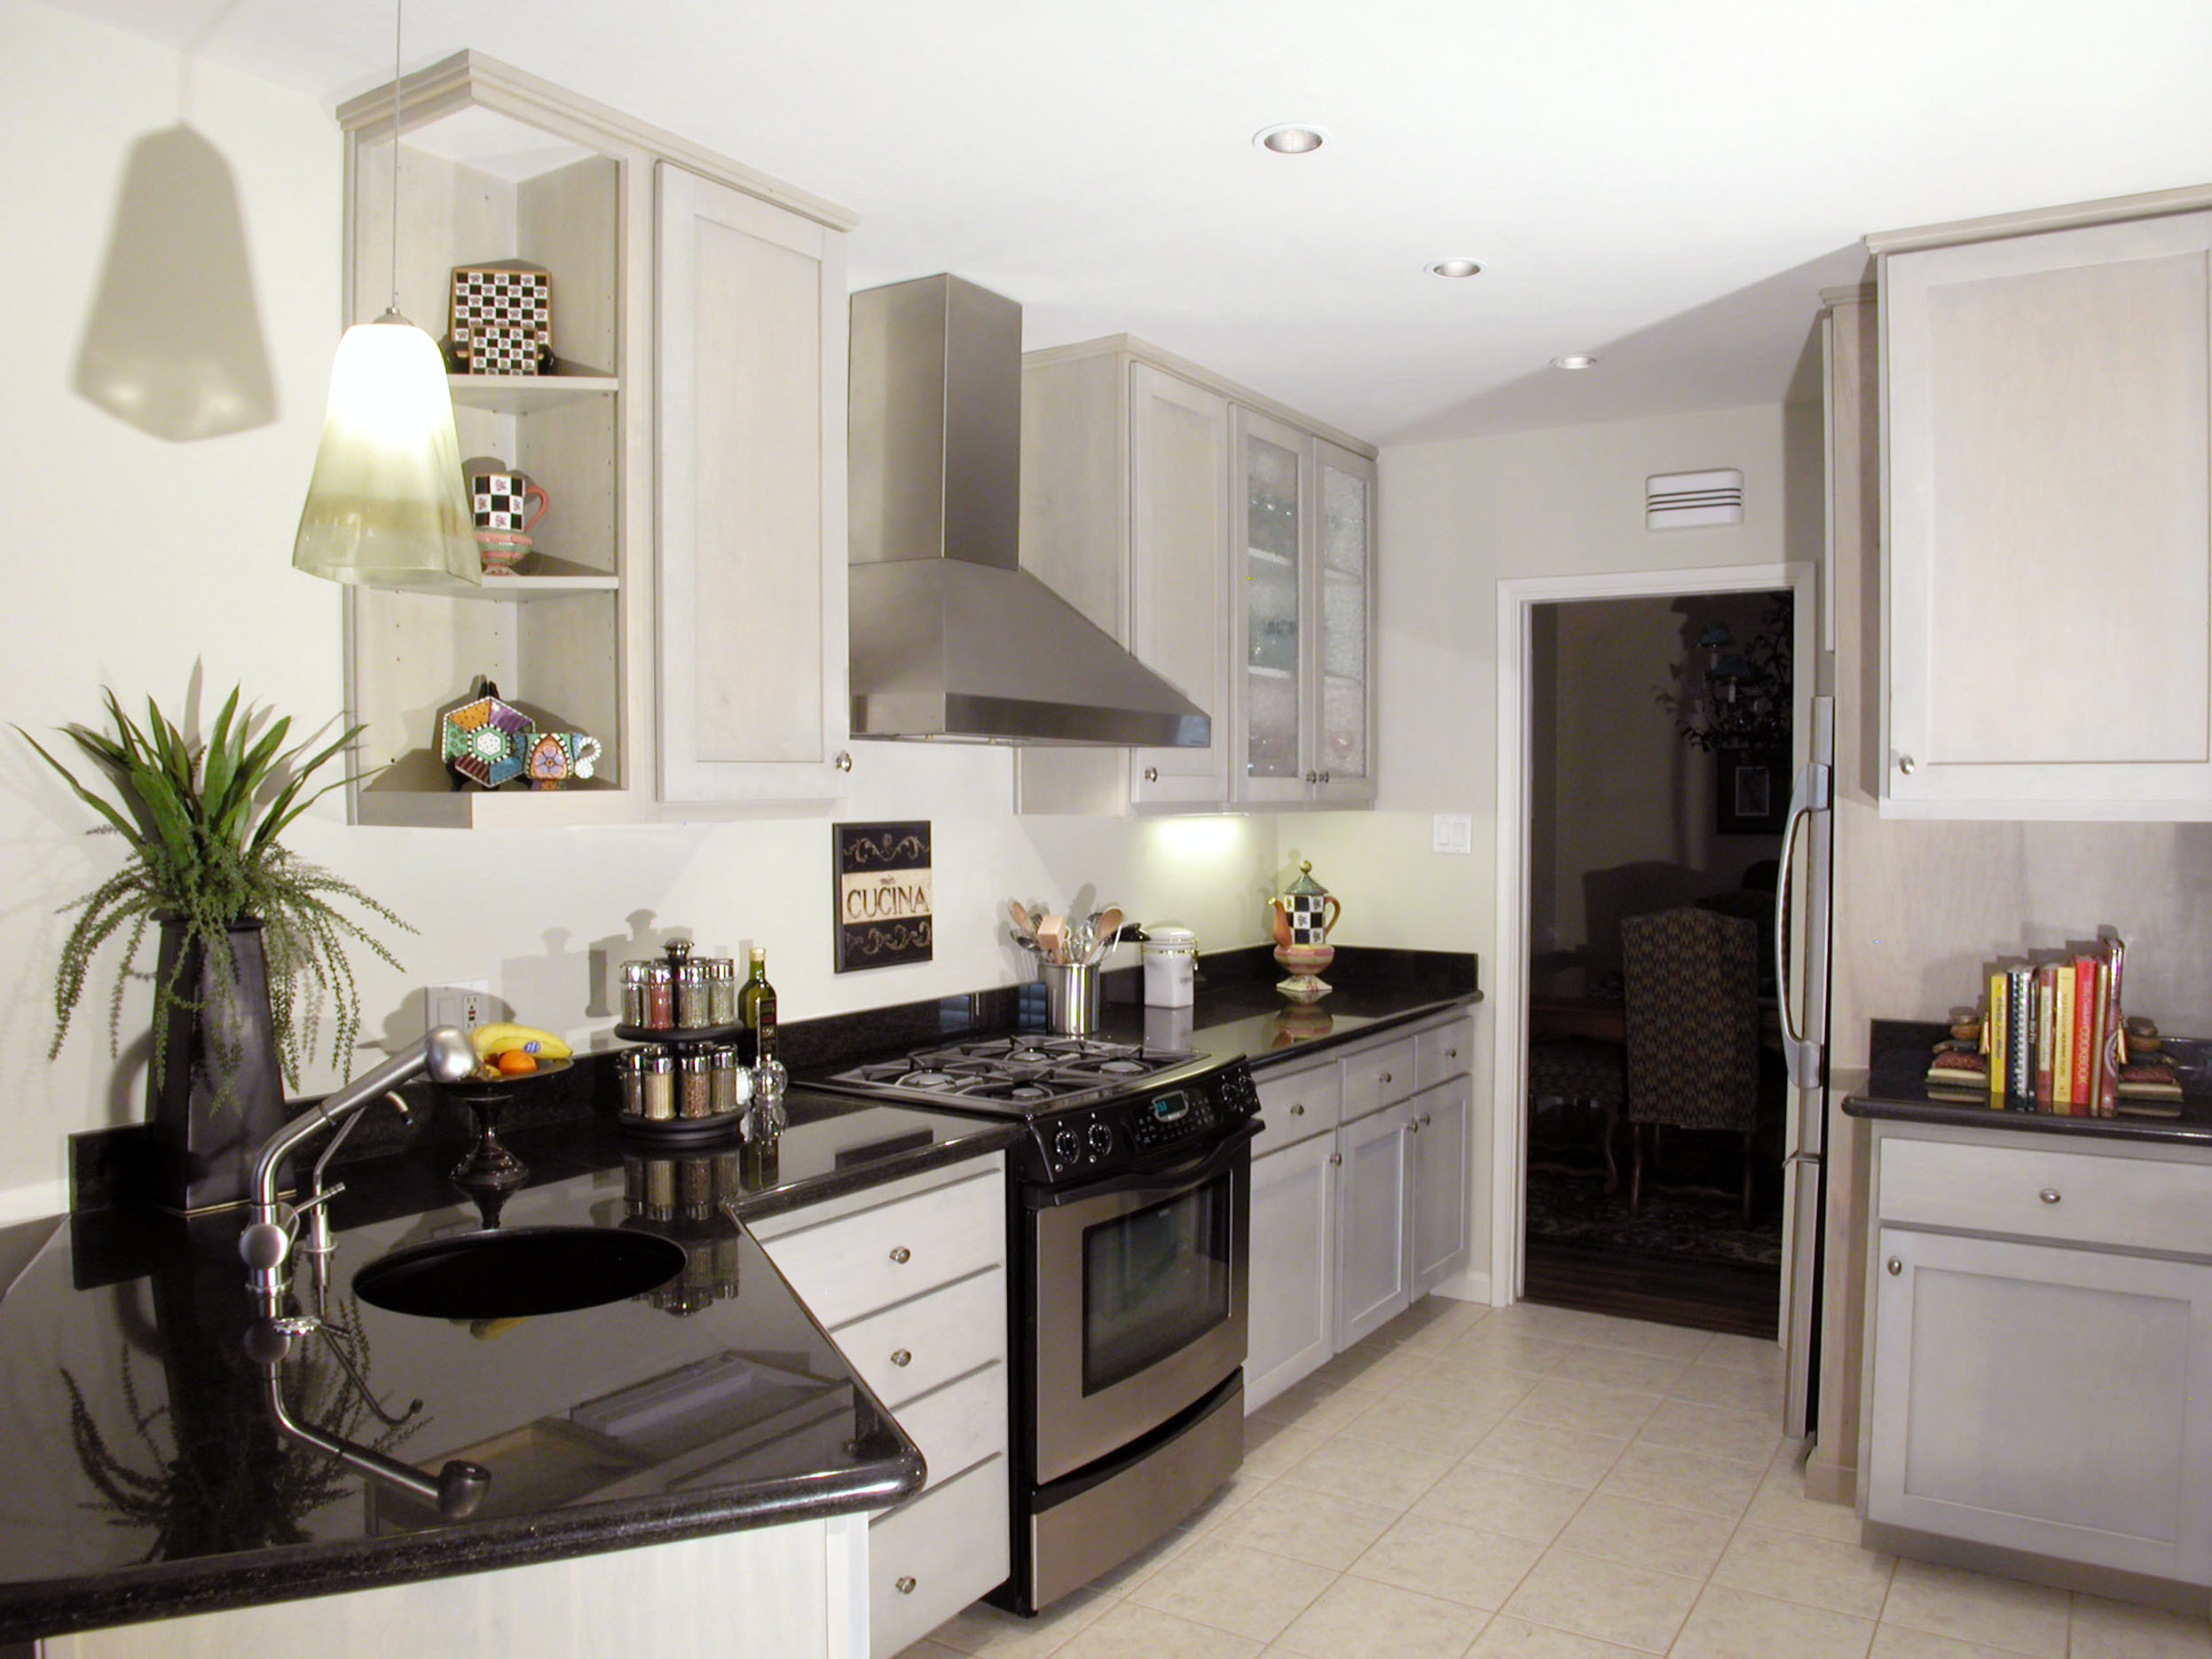 how to clean stainless steel appliances dishwashers. Black Bedroom Furniture Sets. Home Design Ideas